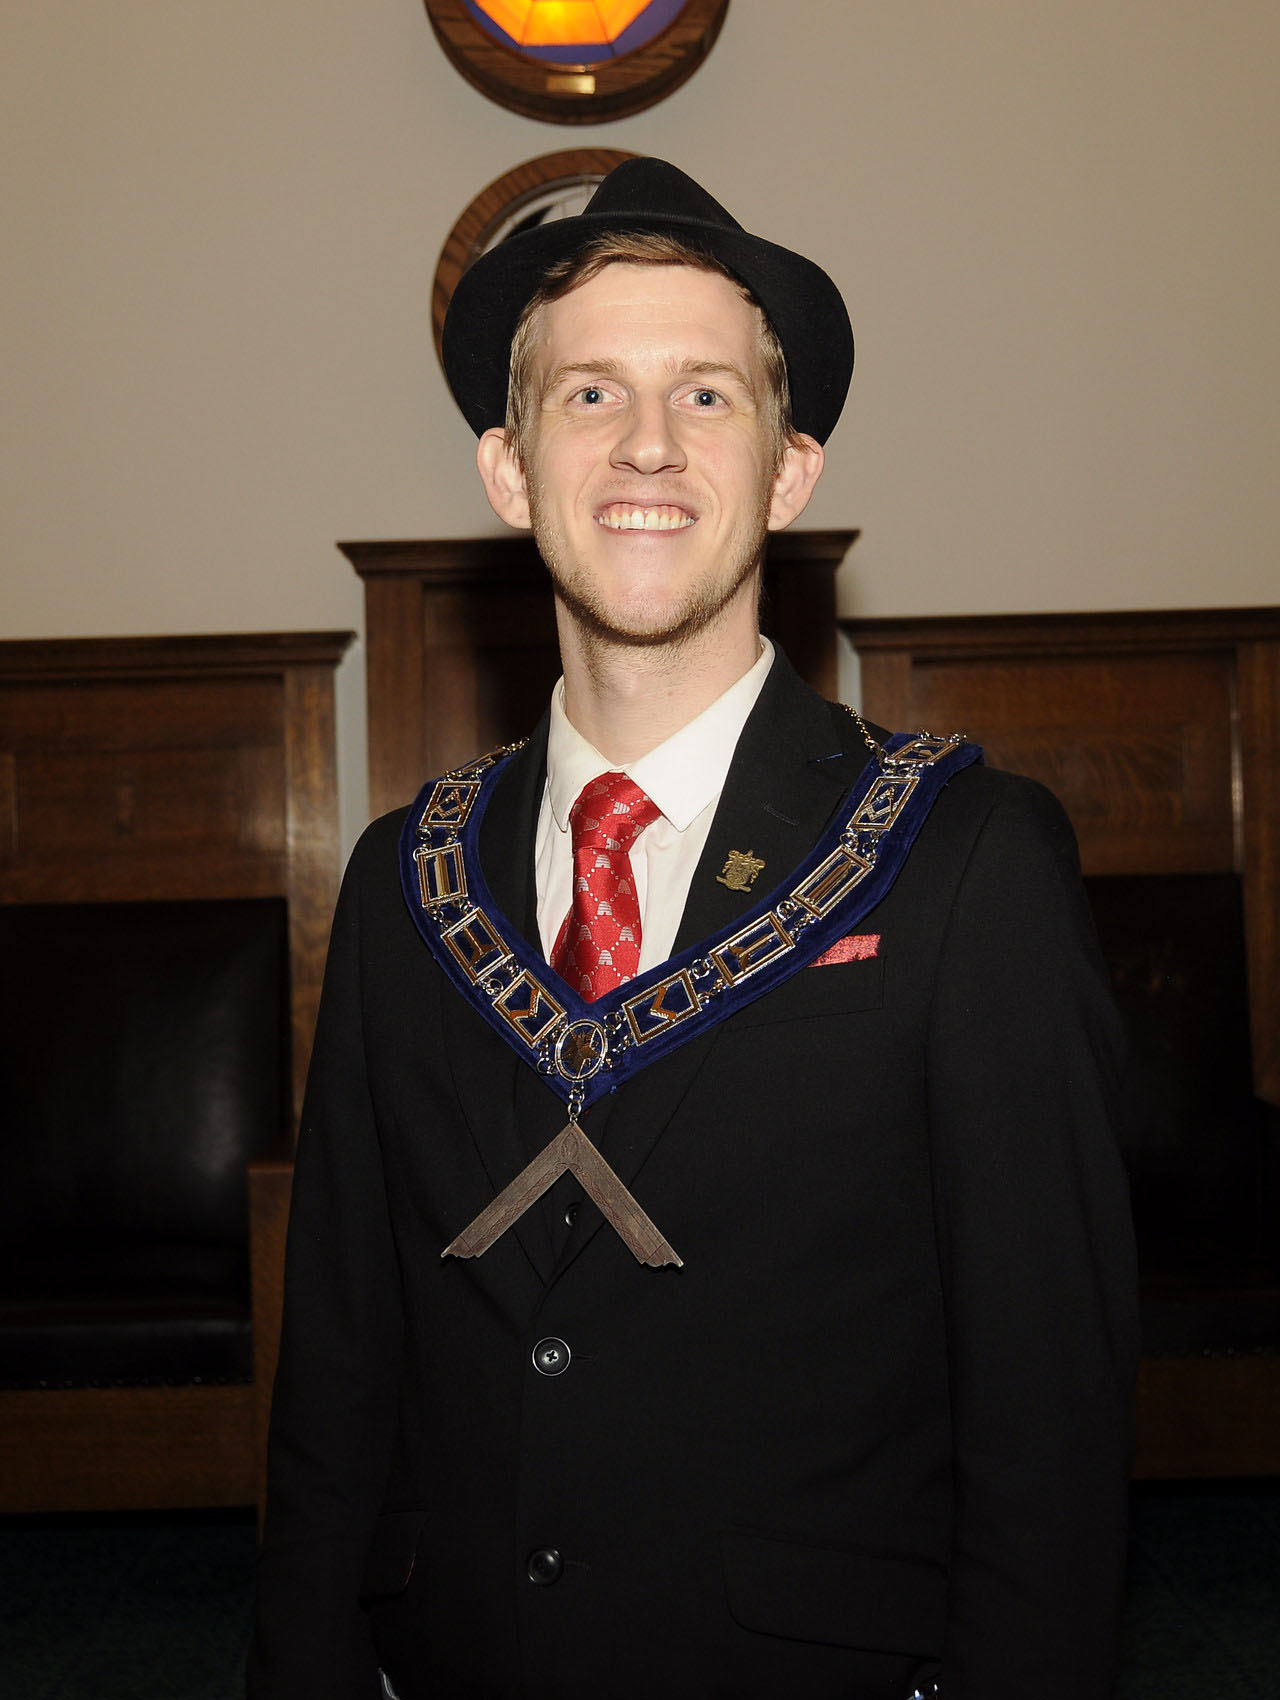 Craig Call - Worshipful Master of Story Lodge for 2020